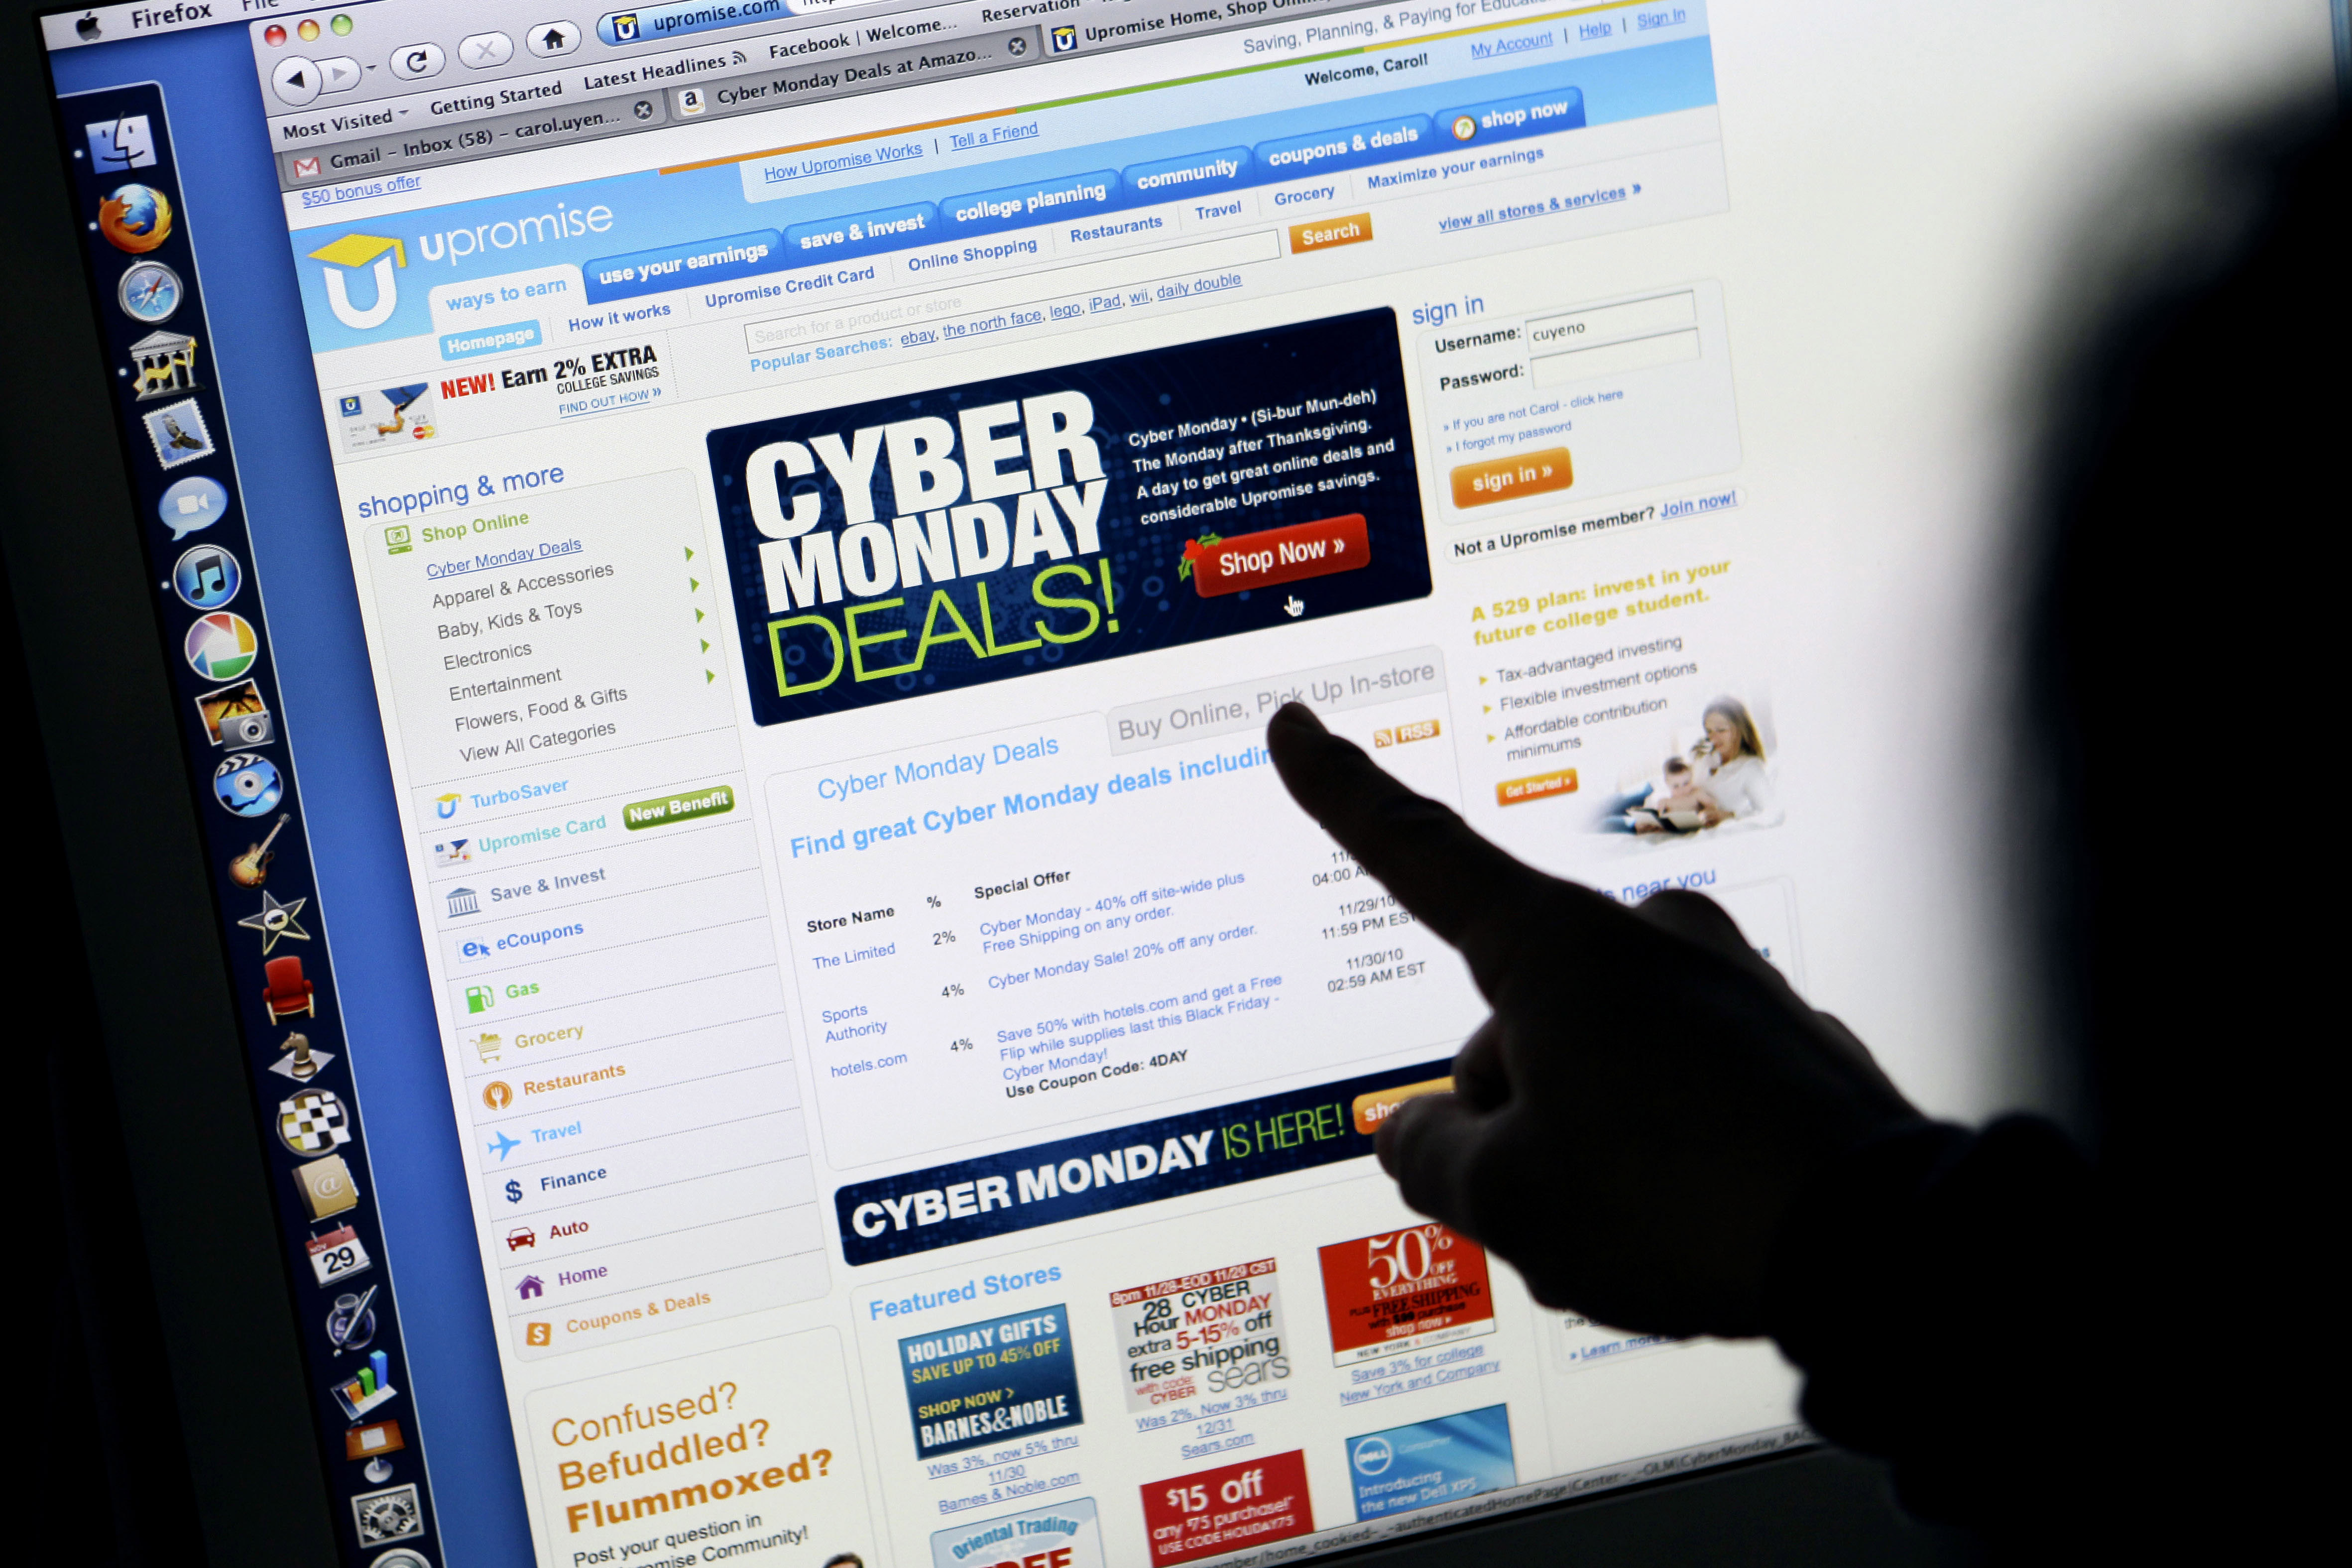 CyberMonday: Those without in-home Broadband access miss out on savings/deals